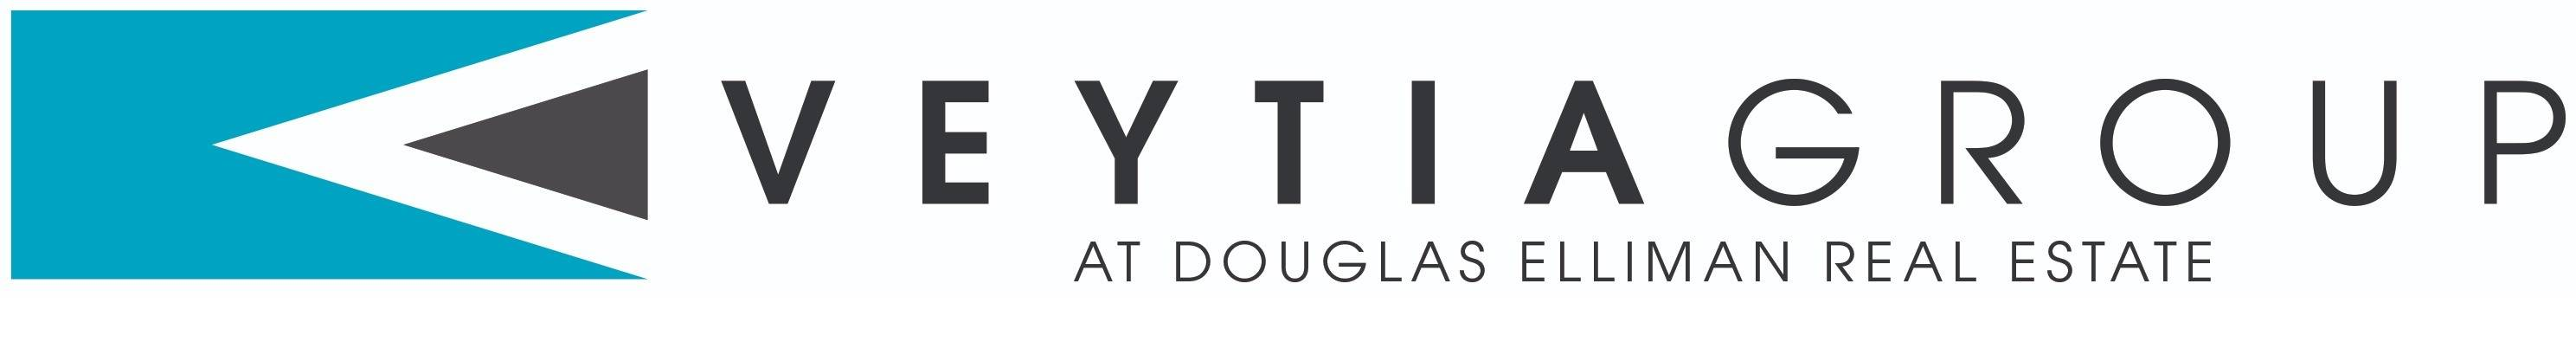 Douglas Elliman REAL ESTATE - Veytia Group Laguna Beach